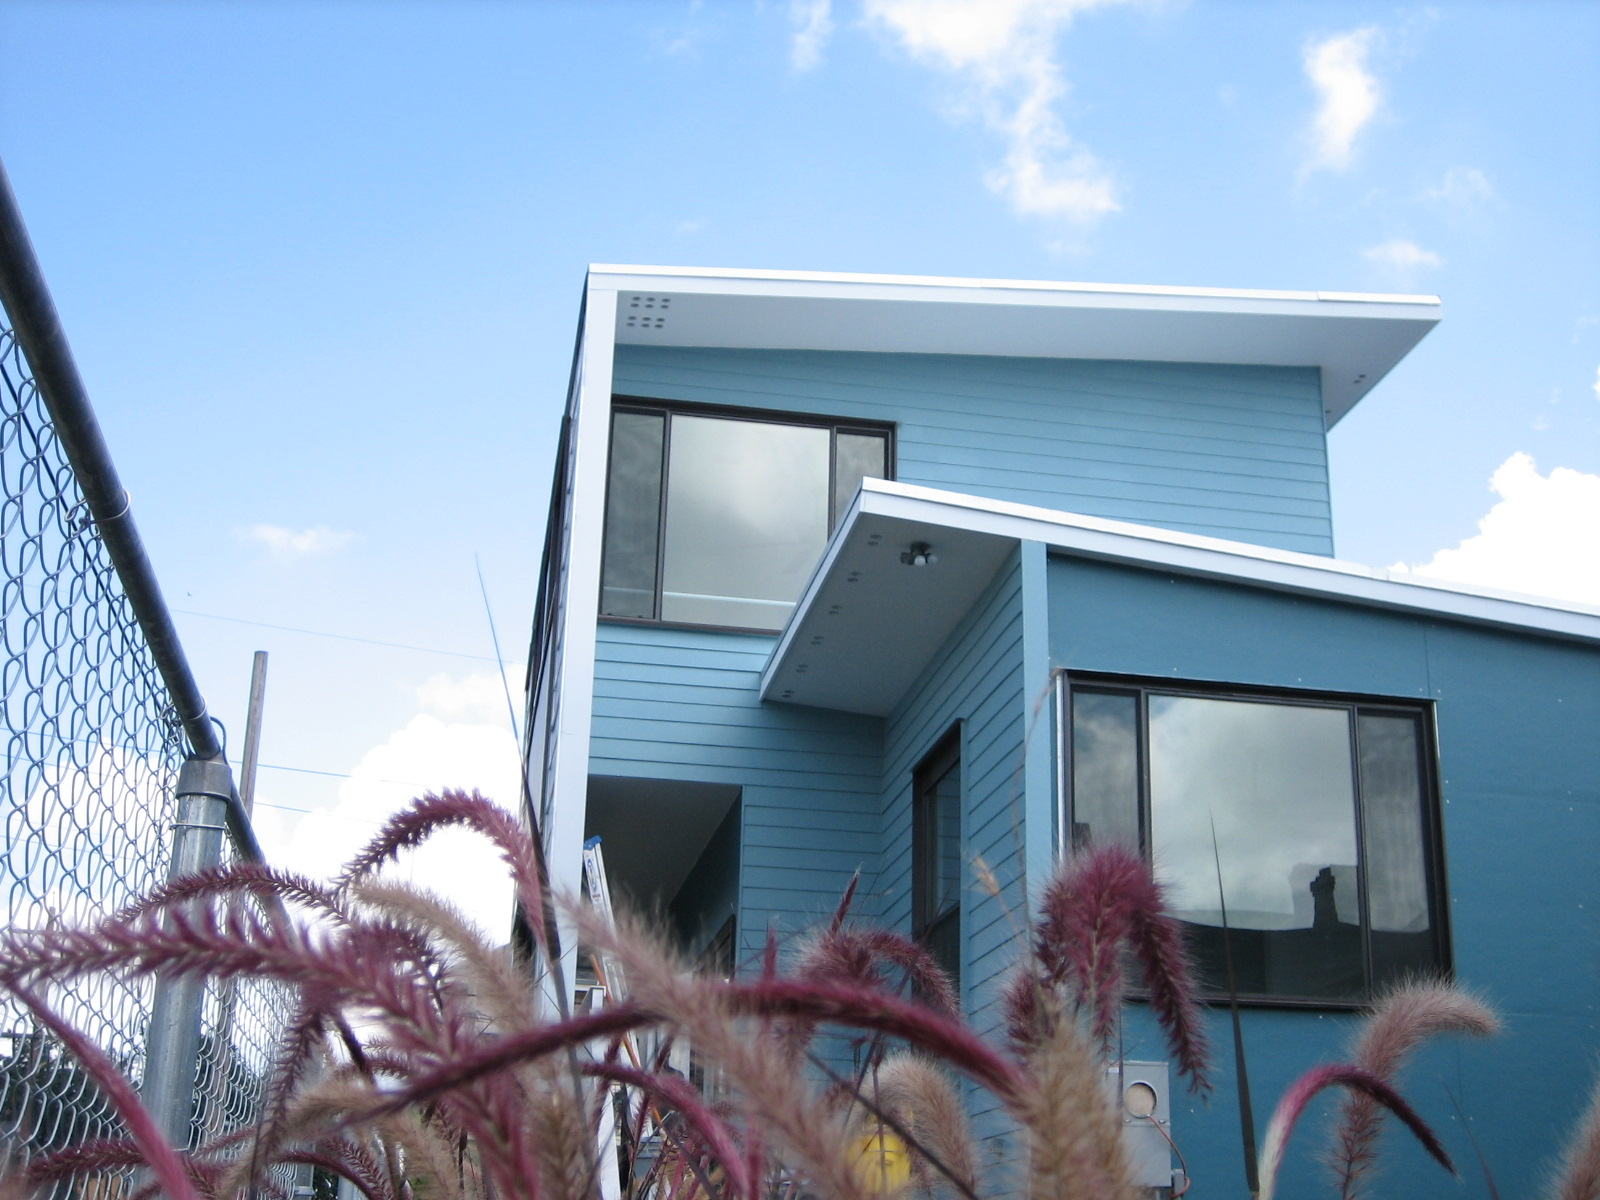 view from below of a modern two-story home with sky and clouds above